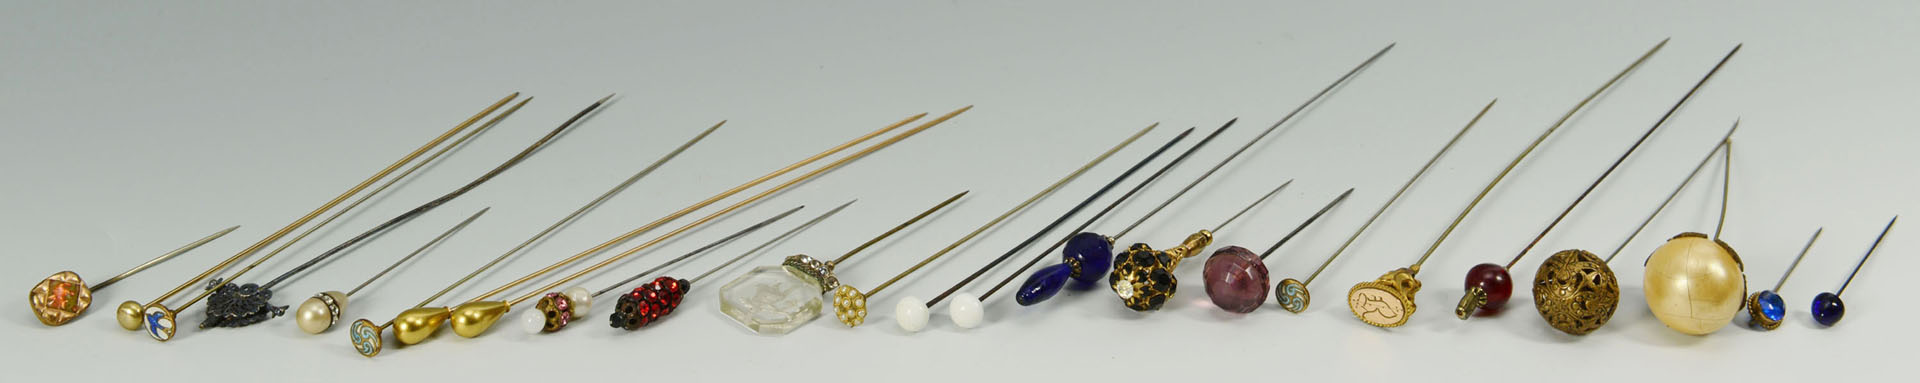 Hatpin and Hair Comb Collection, 33 pcs total